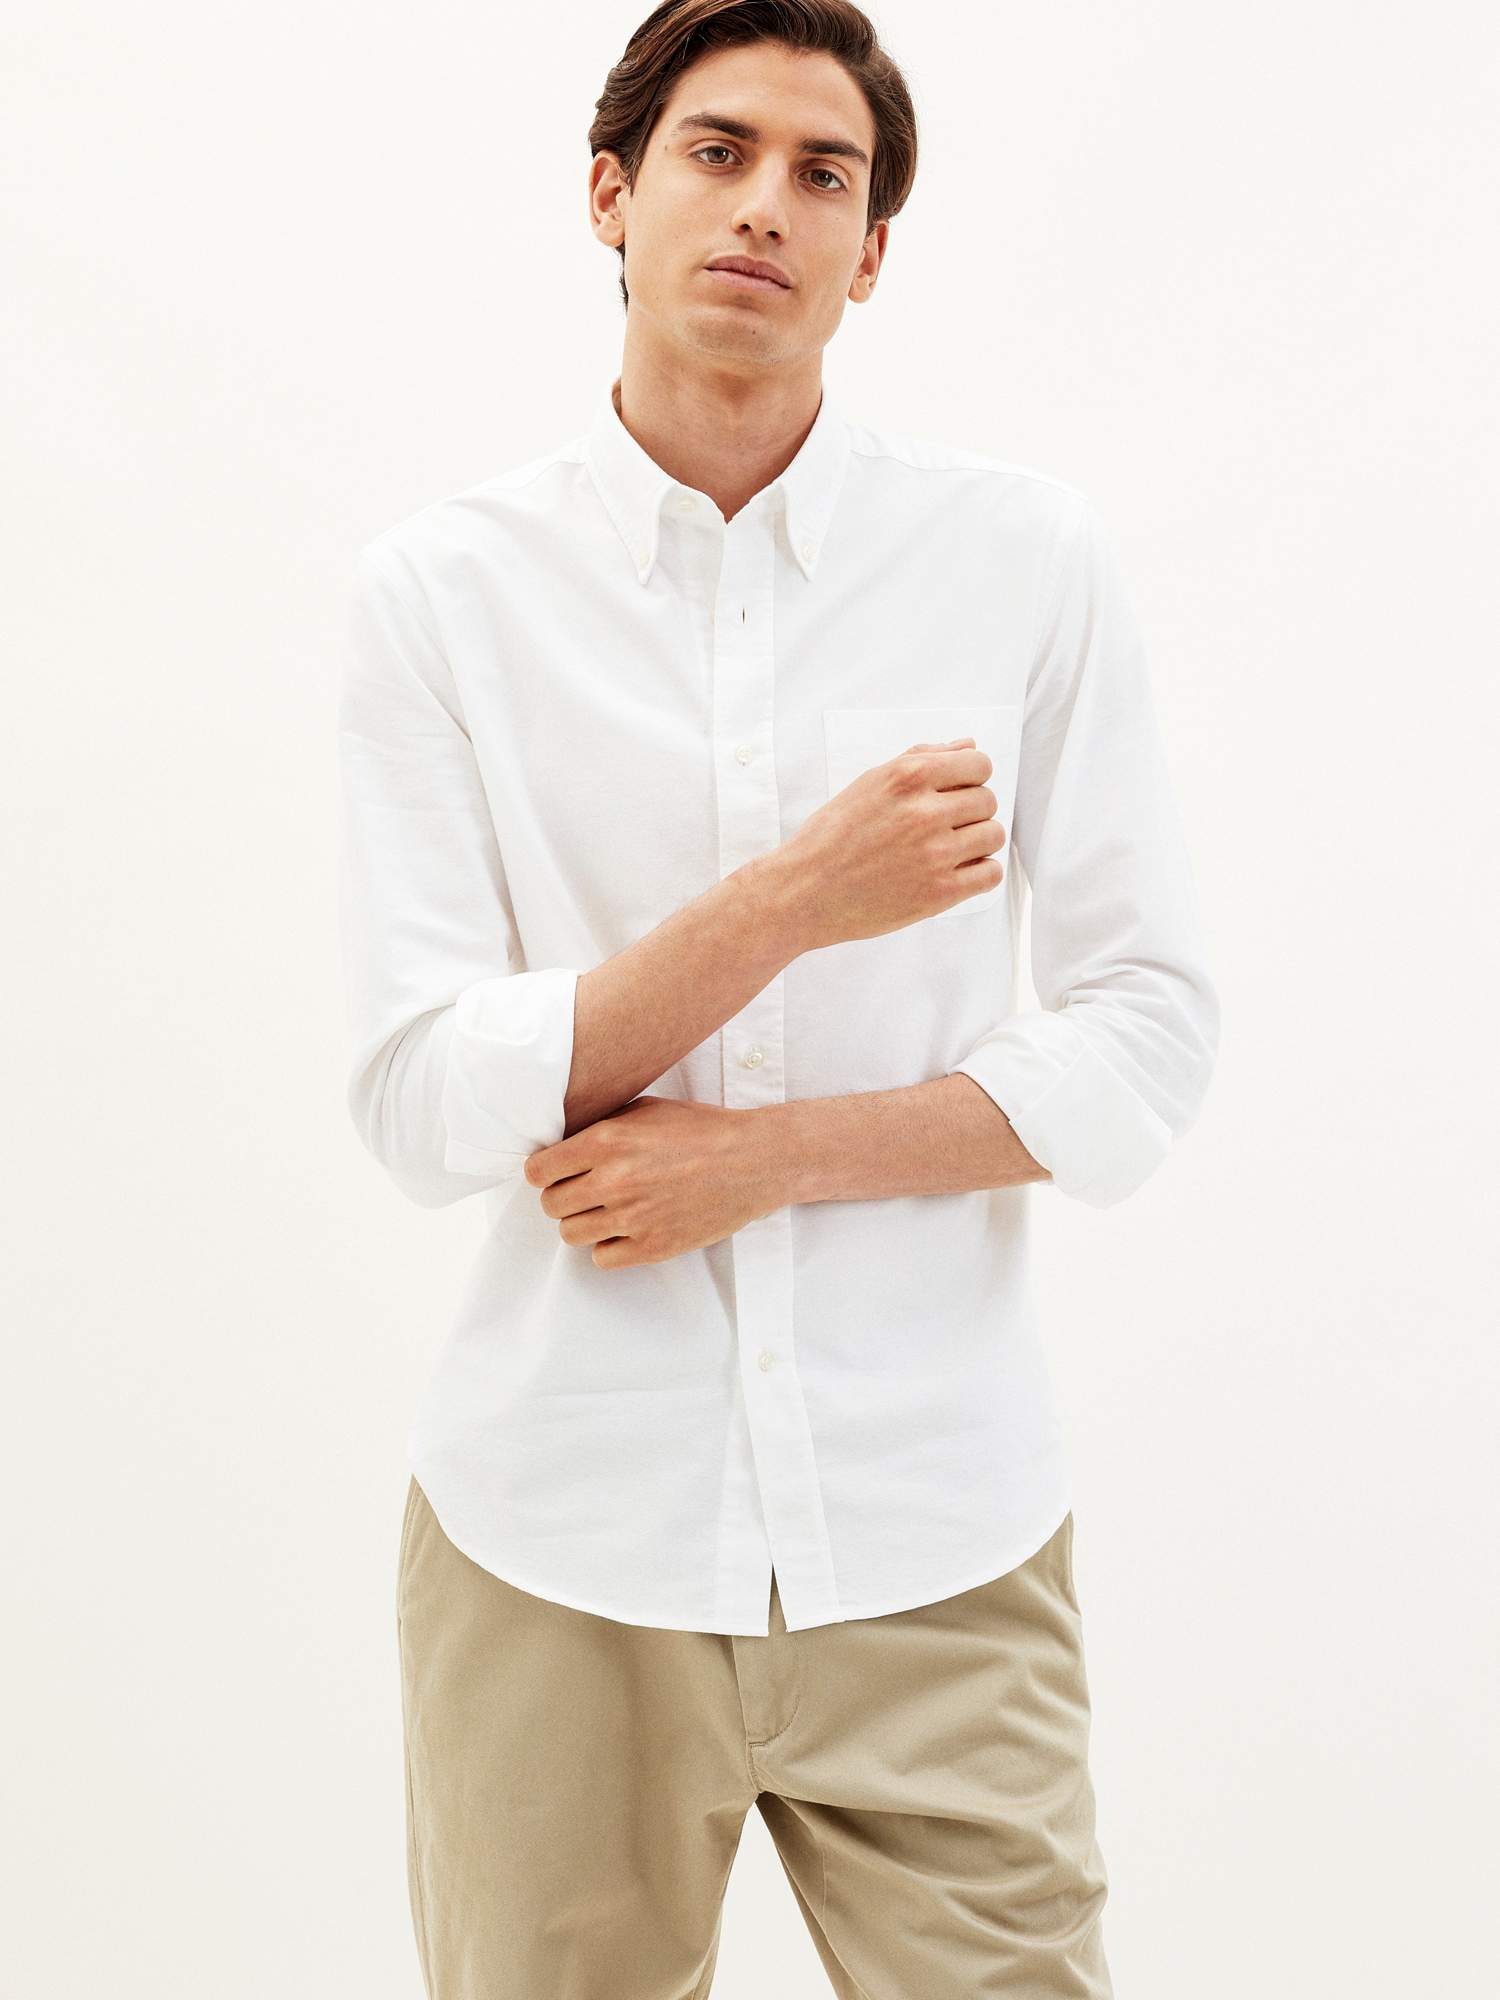 20200709-trunk-button-down-shirt-white_012.jpg